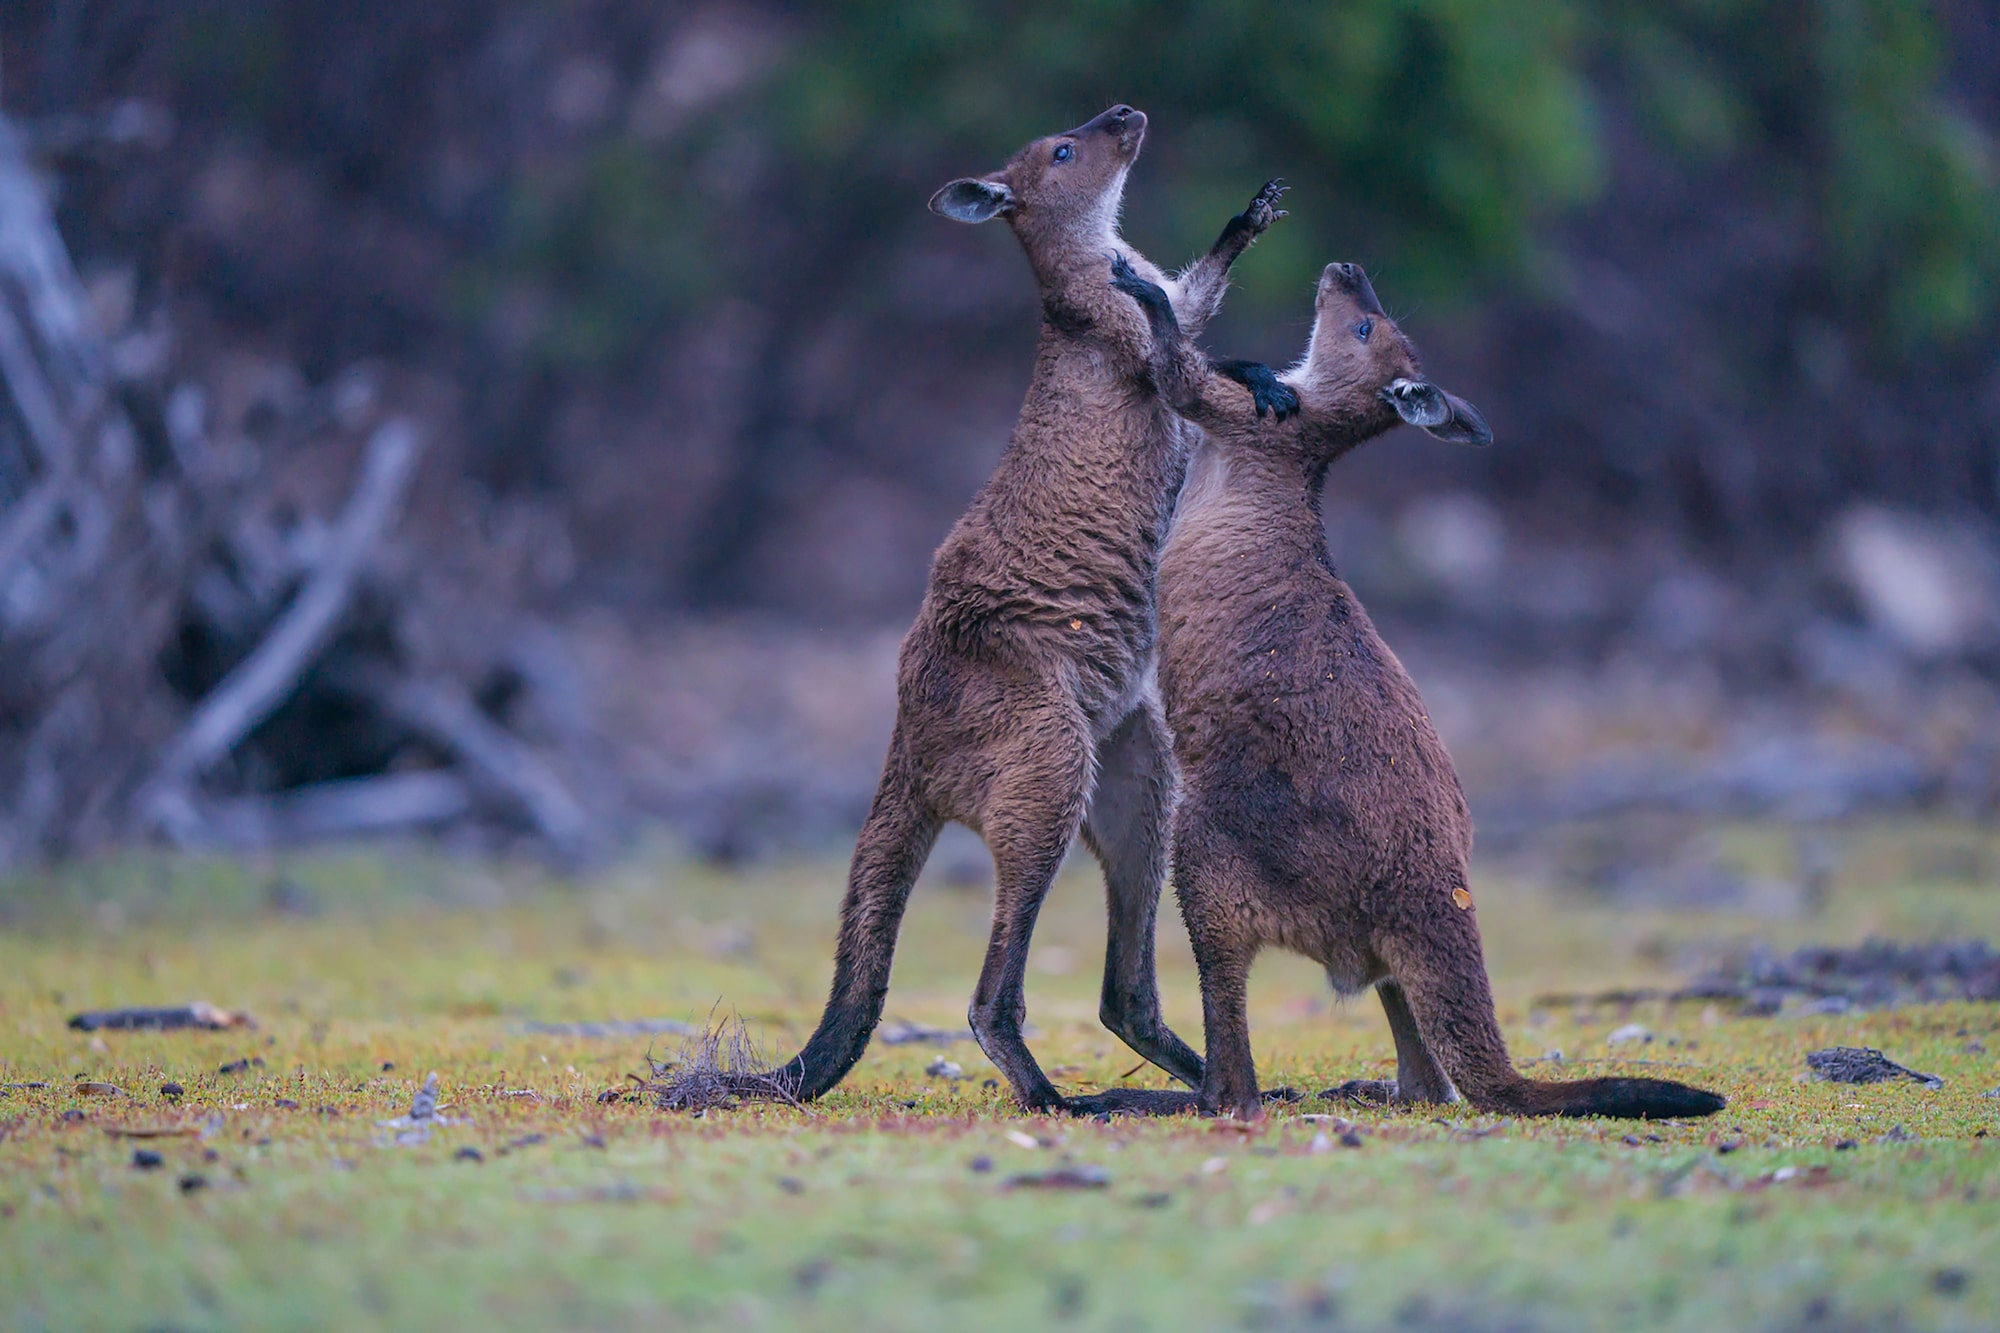 kaisa lappalainen sony alpha 9 two kangaroos wrestle each other for dominance